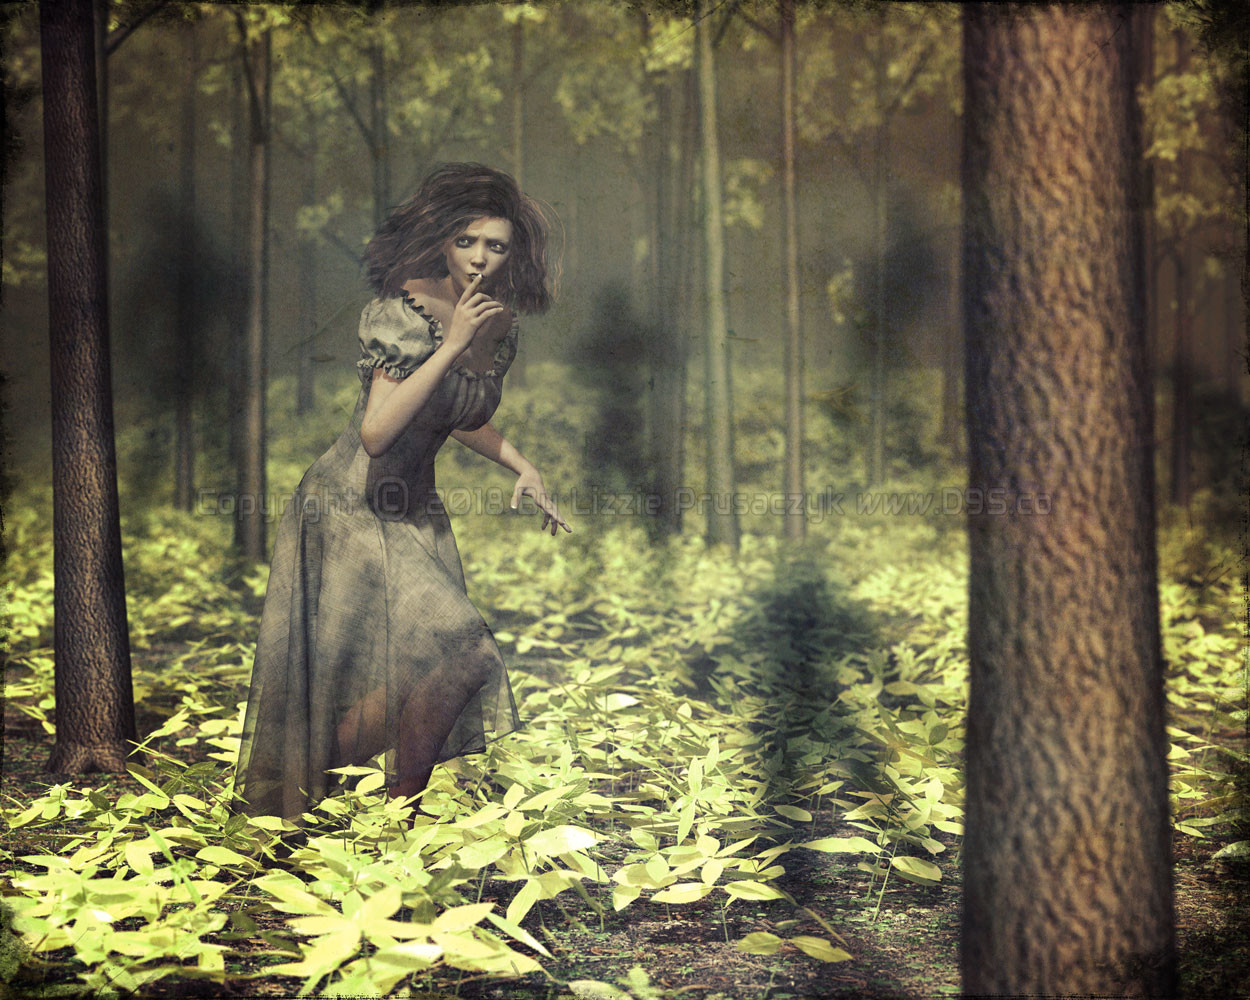 She creeps through the forest hoping to escape her tormentors but she is never alone.